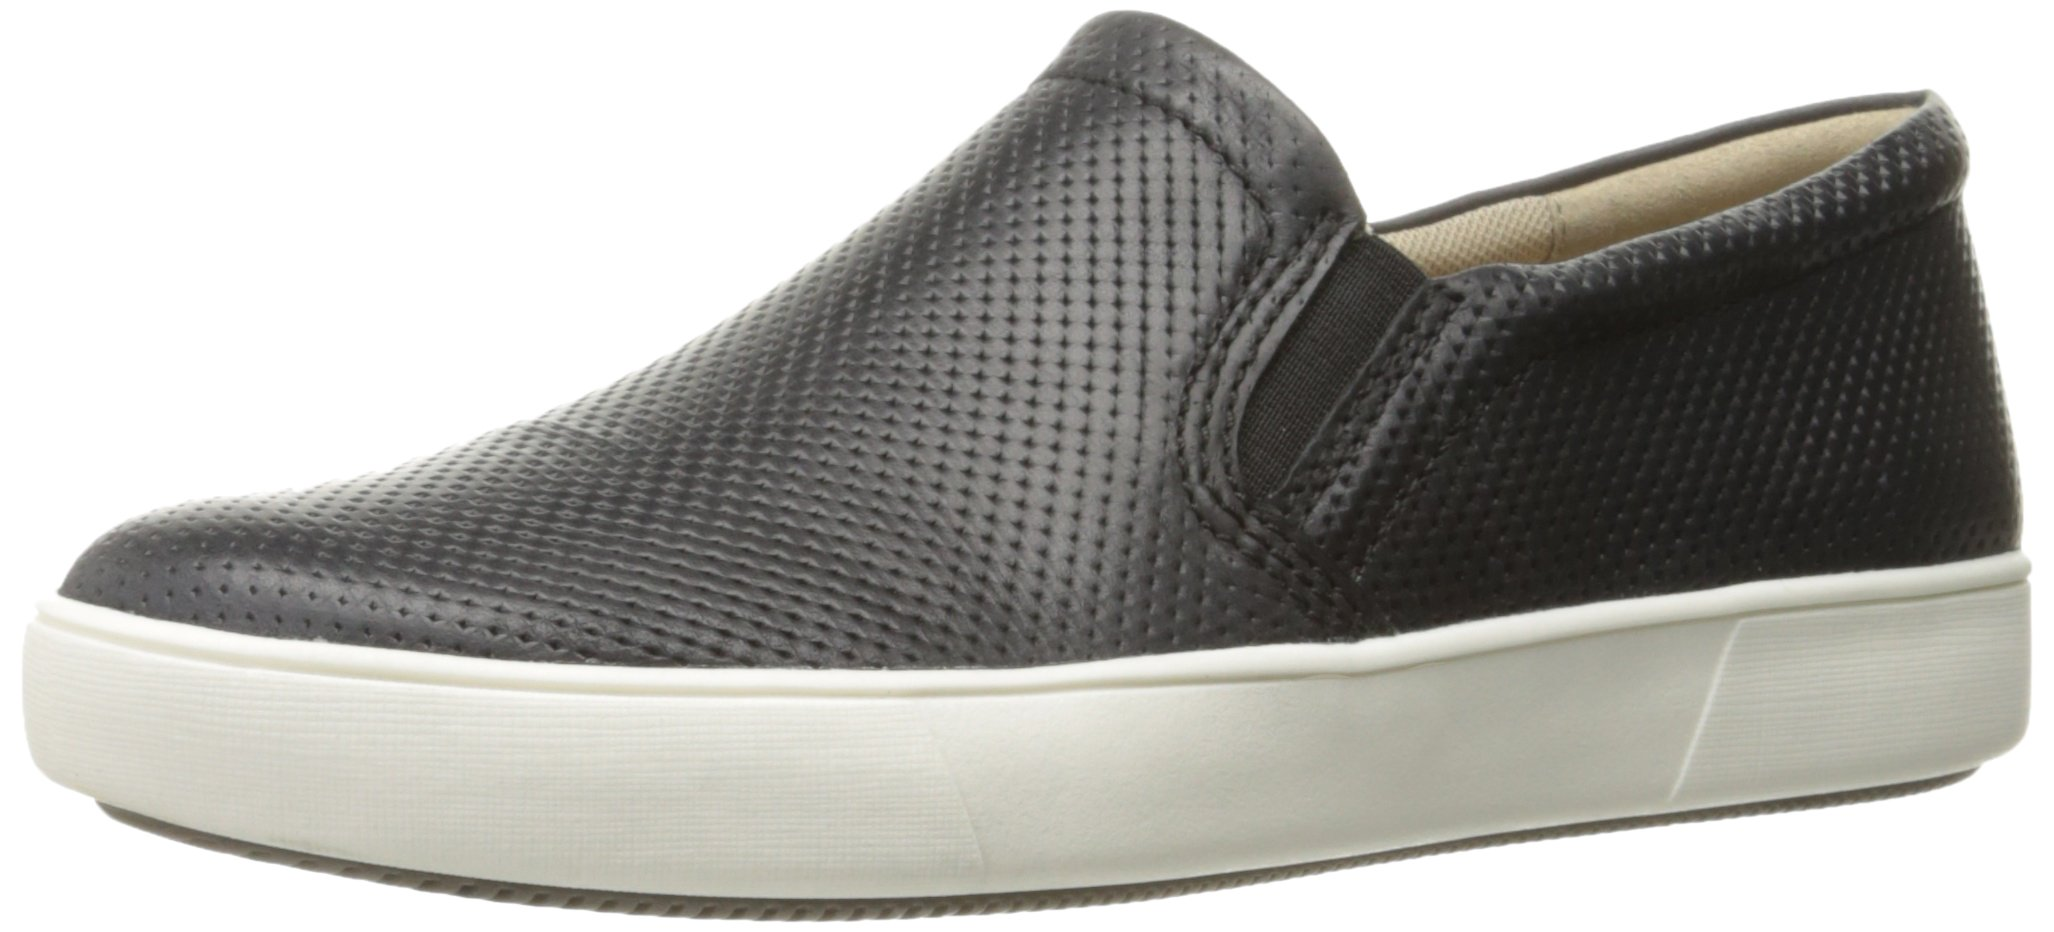 Naturalizer Women's Marianne Sneaker, Black, 8.5 Wide